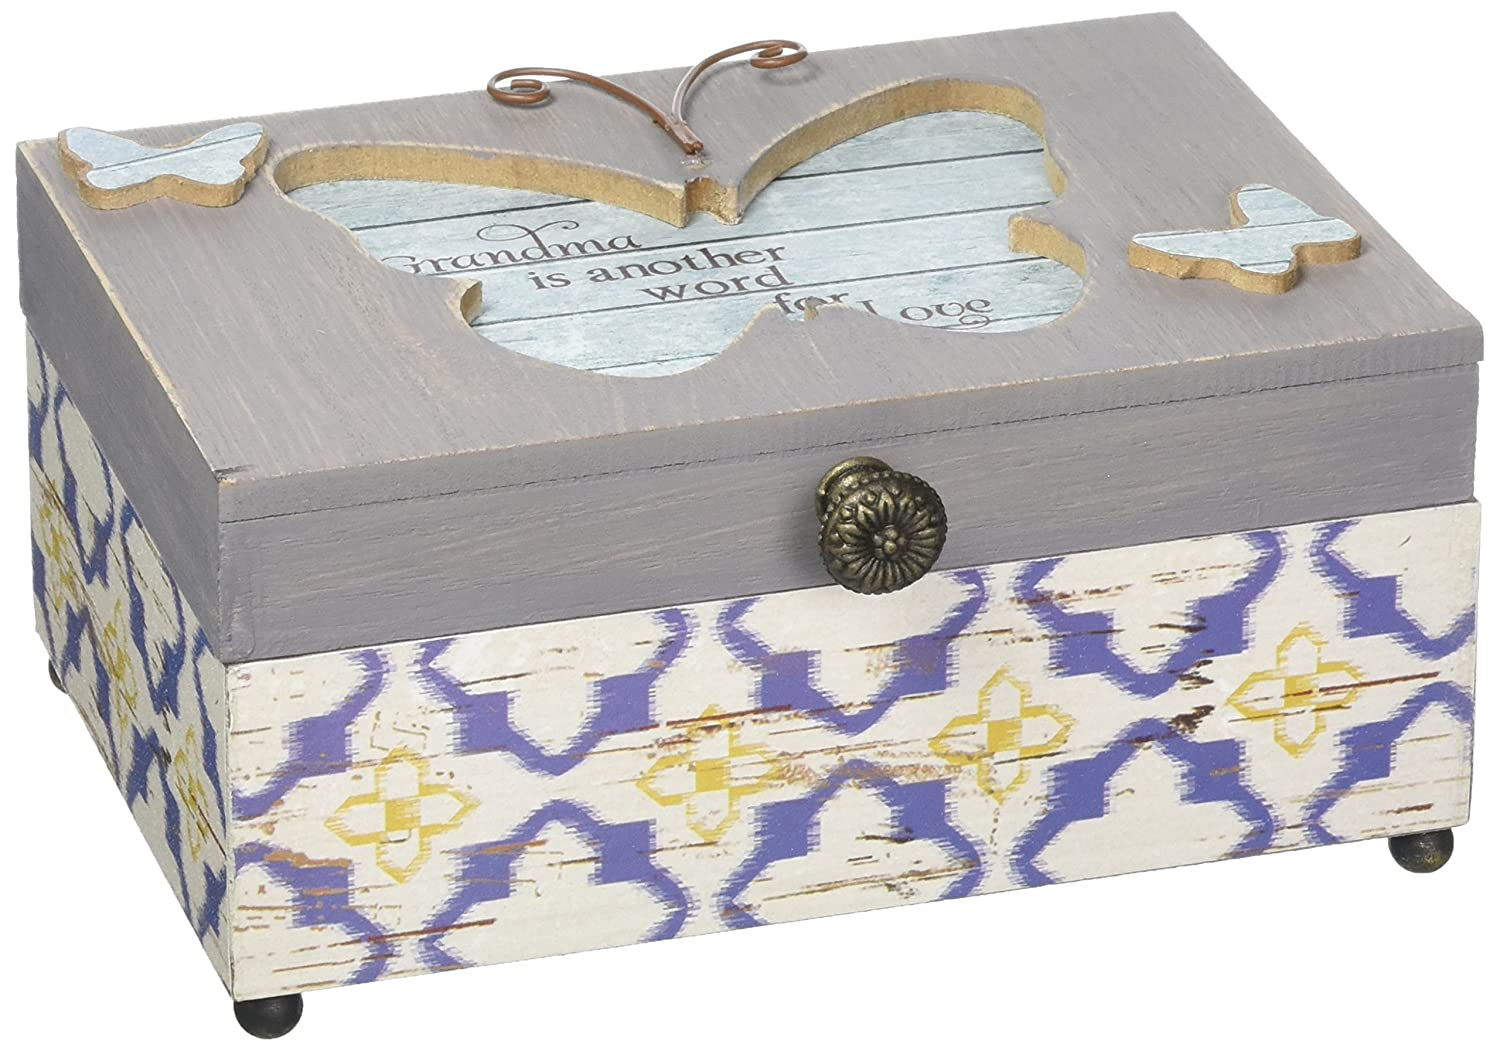 Simple Spirits Pavilion Gift Company 41099-Patterned Butterfly Grandma Wind Beneath My Wings Musical Jewelry Box